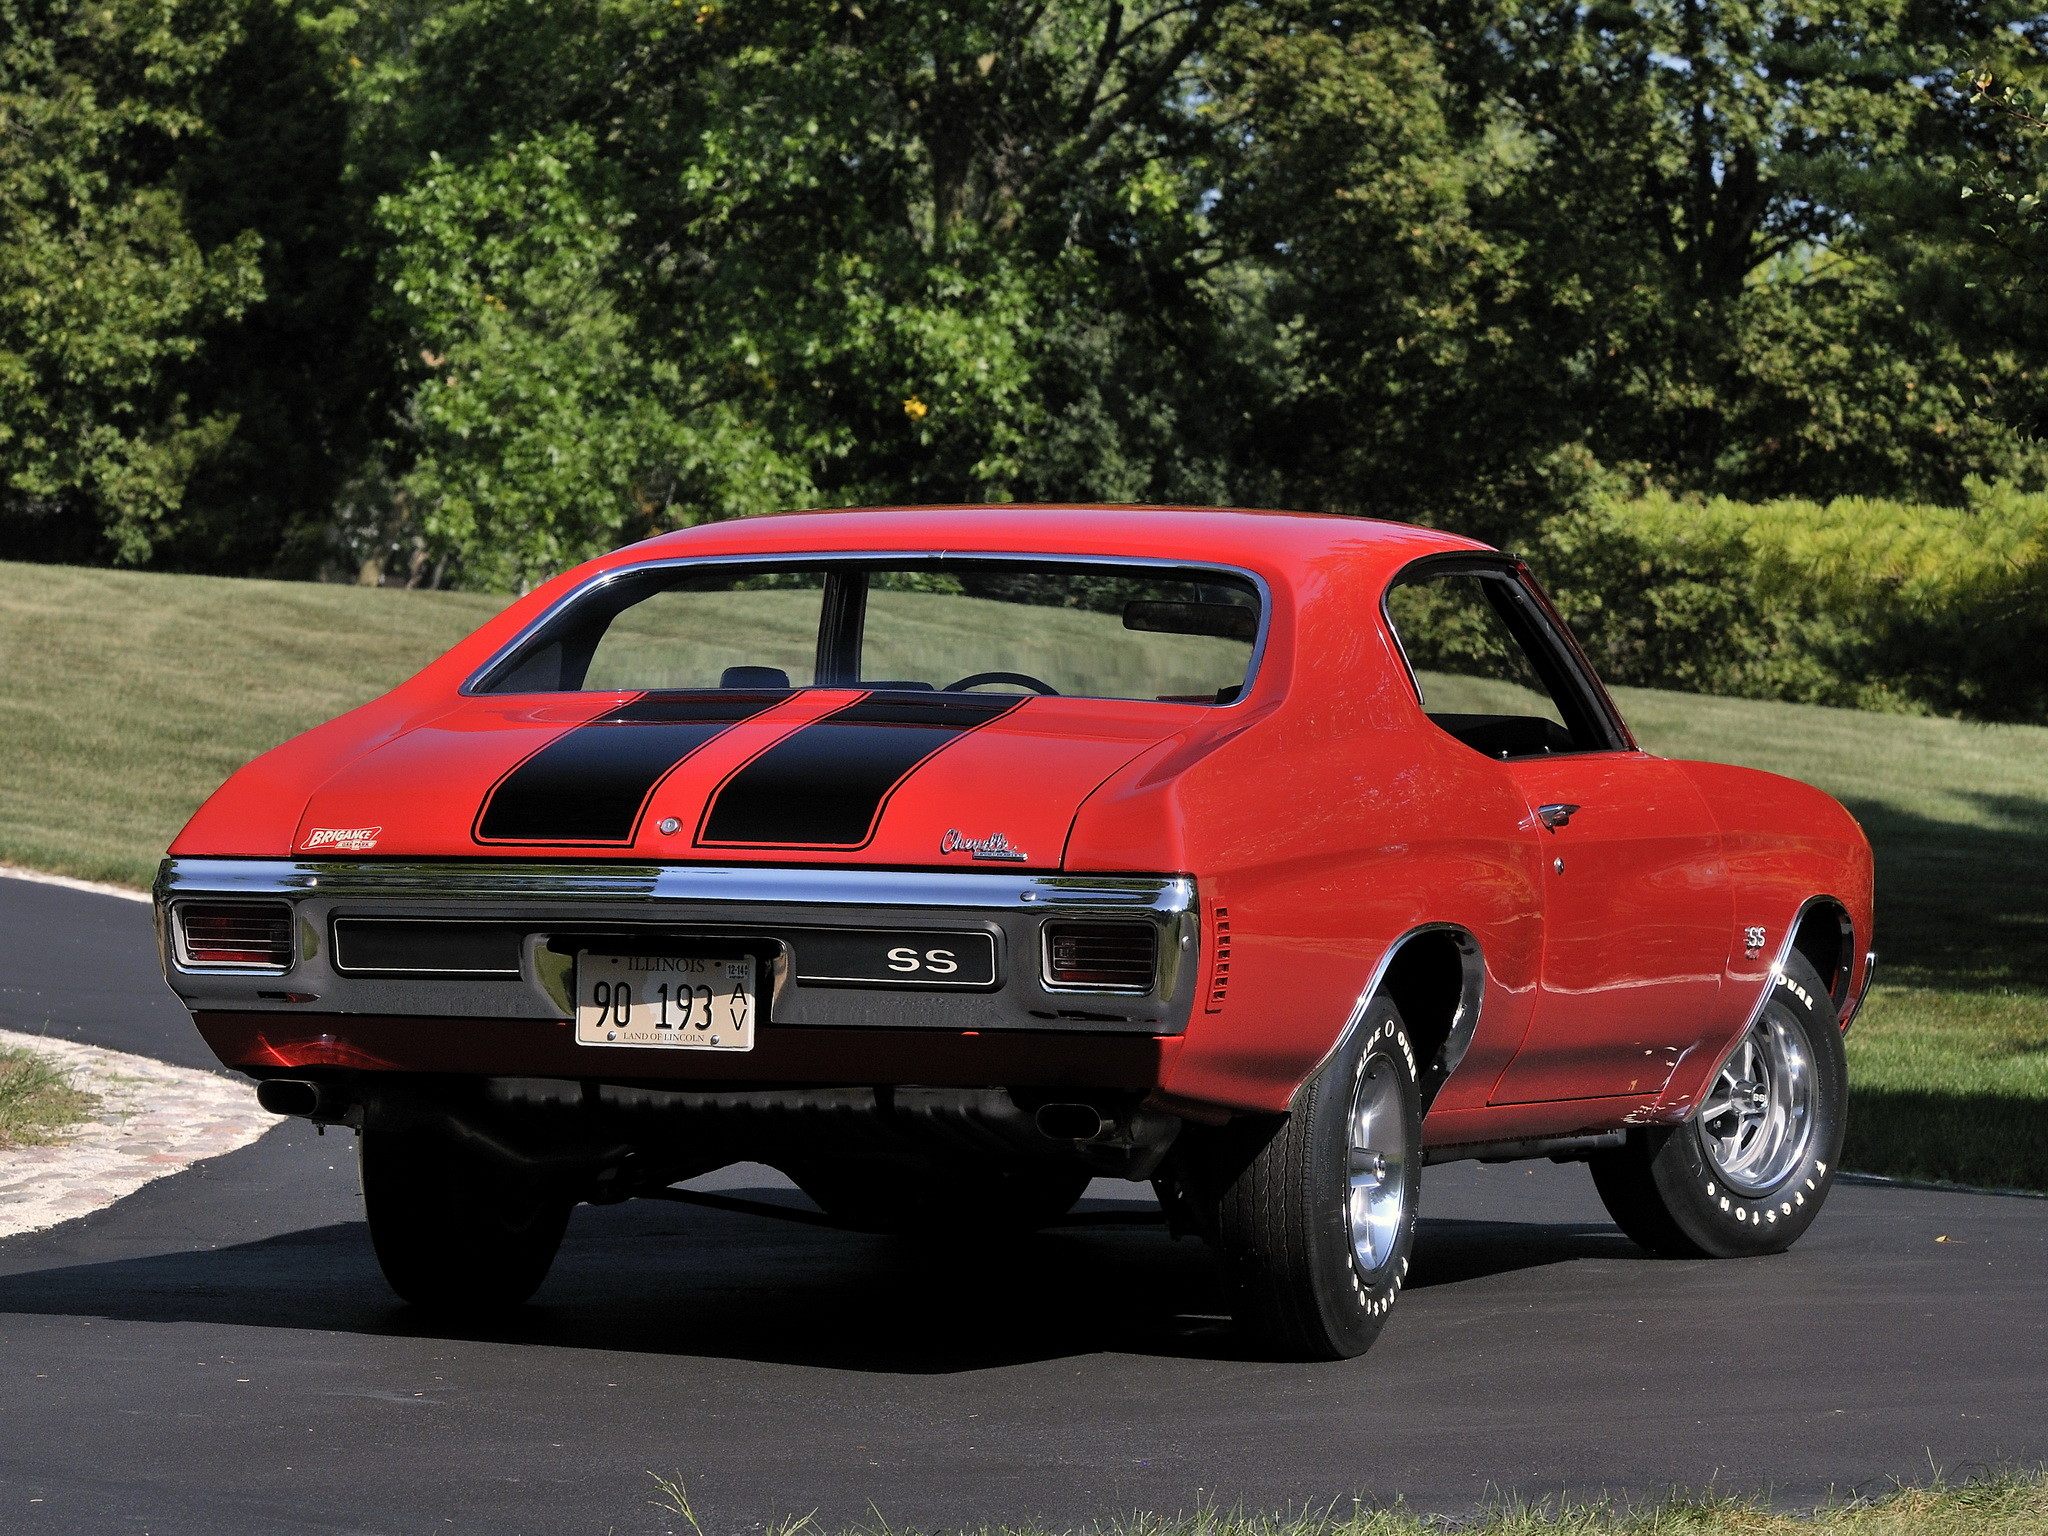 1970 Chevelle Ss Wallpaper (58+ images)